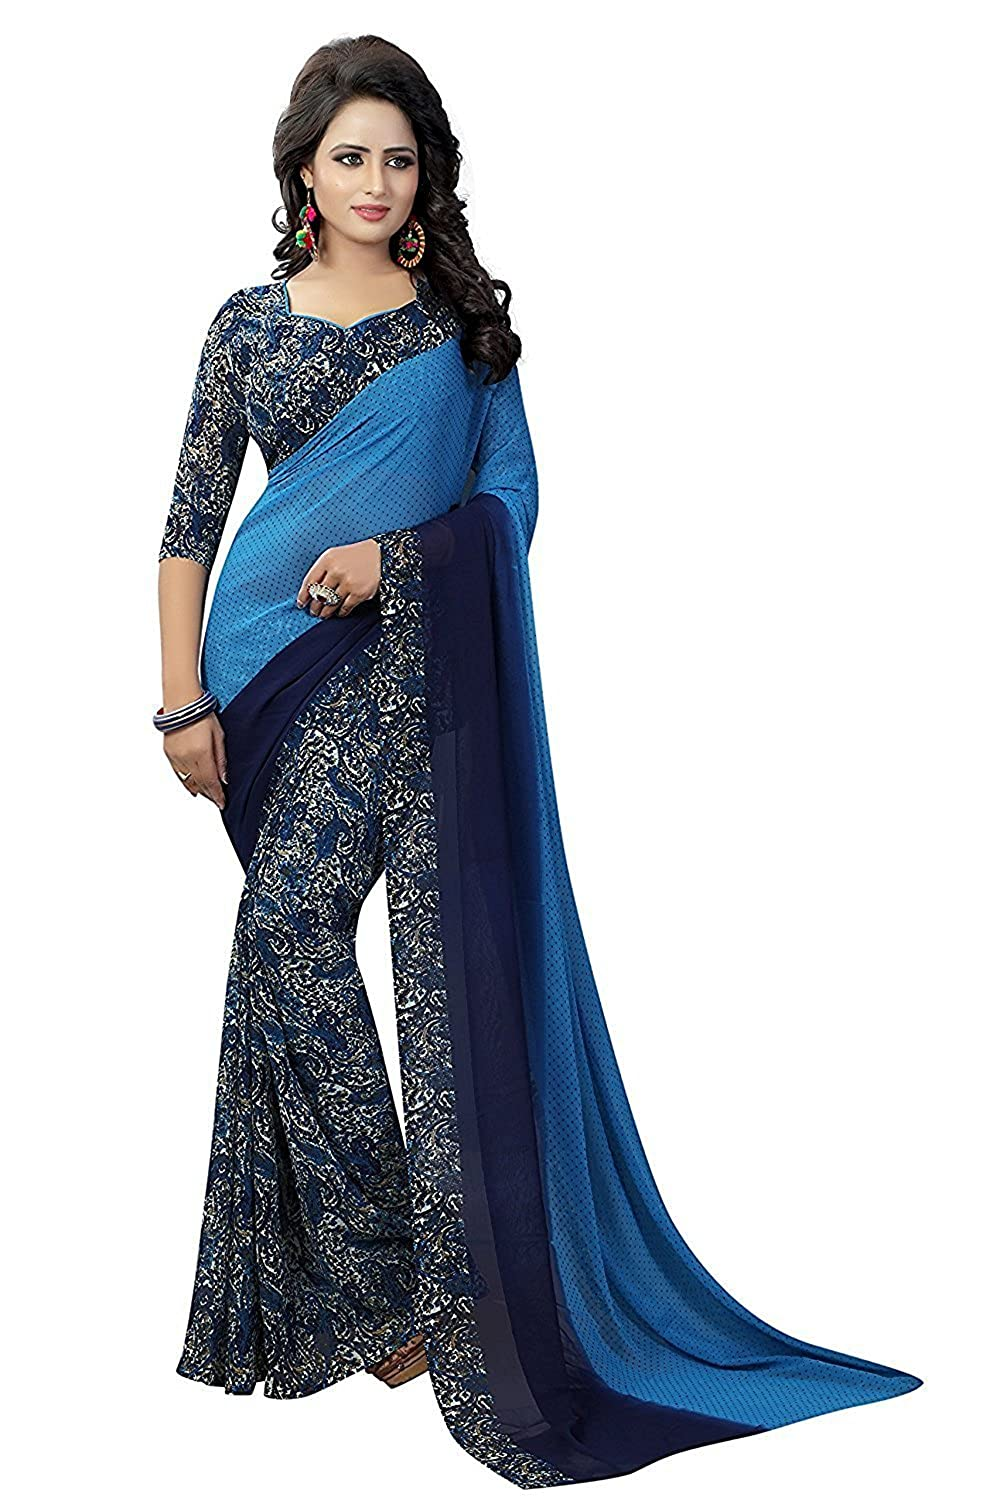 Raptus Lifestyle Saree Starting at Rs.299